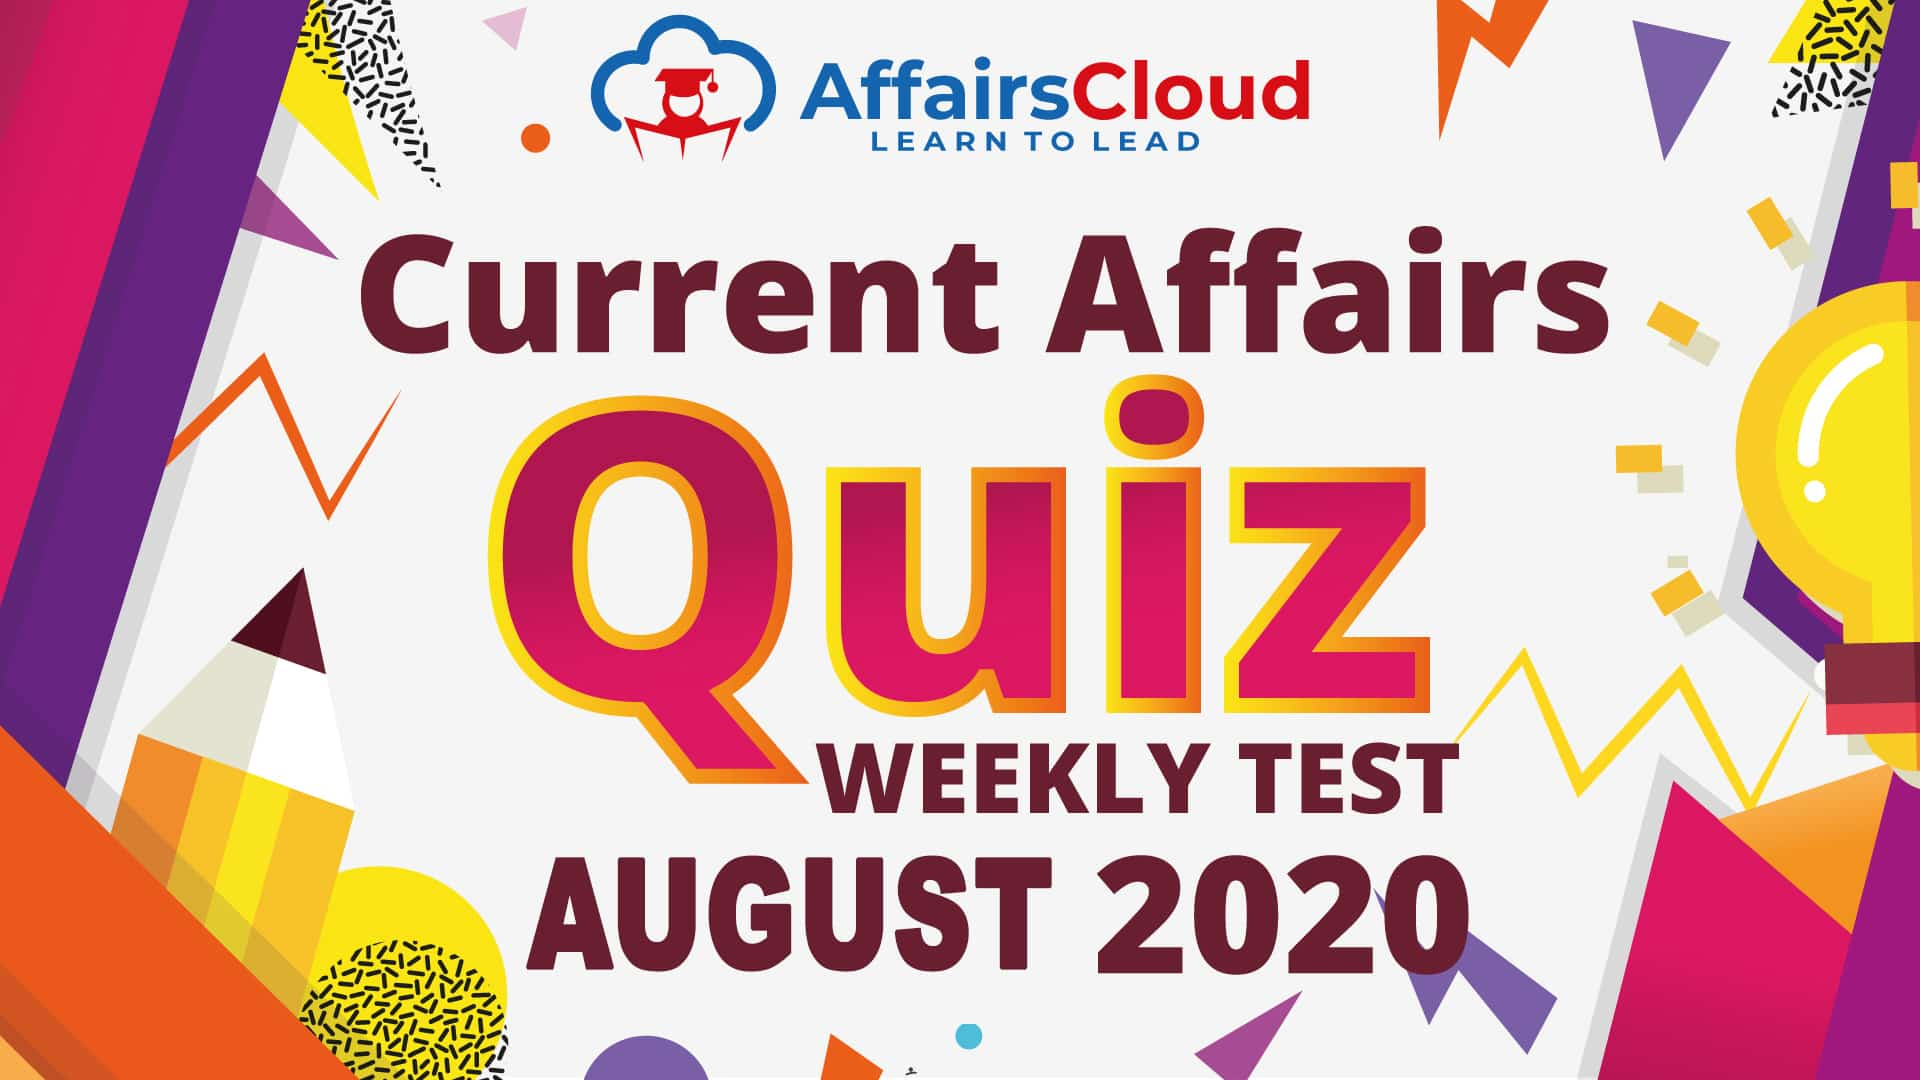 Current Affairs Weekly Test August 2020